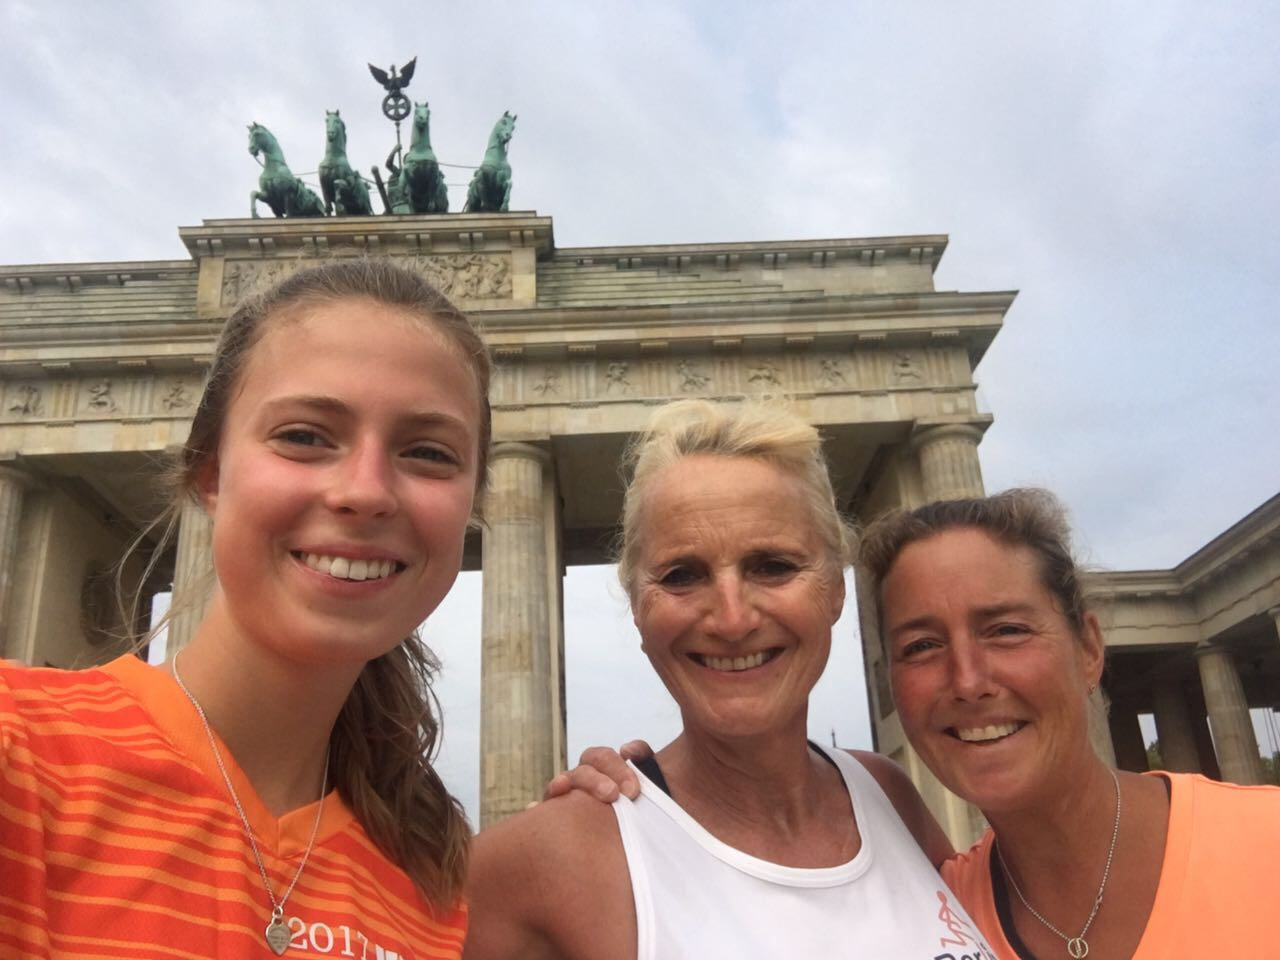 Mit Berlin Sightrunning am Brandenburger Tor